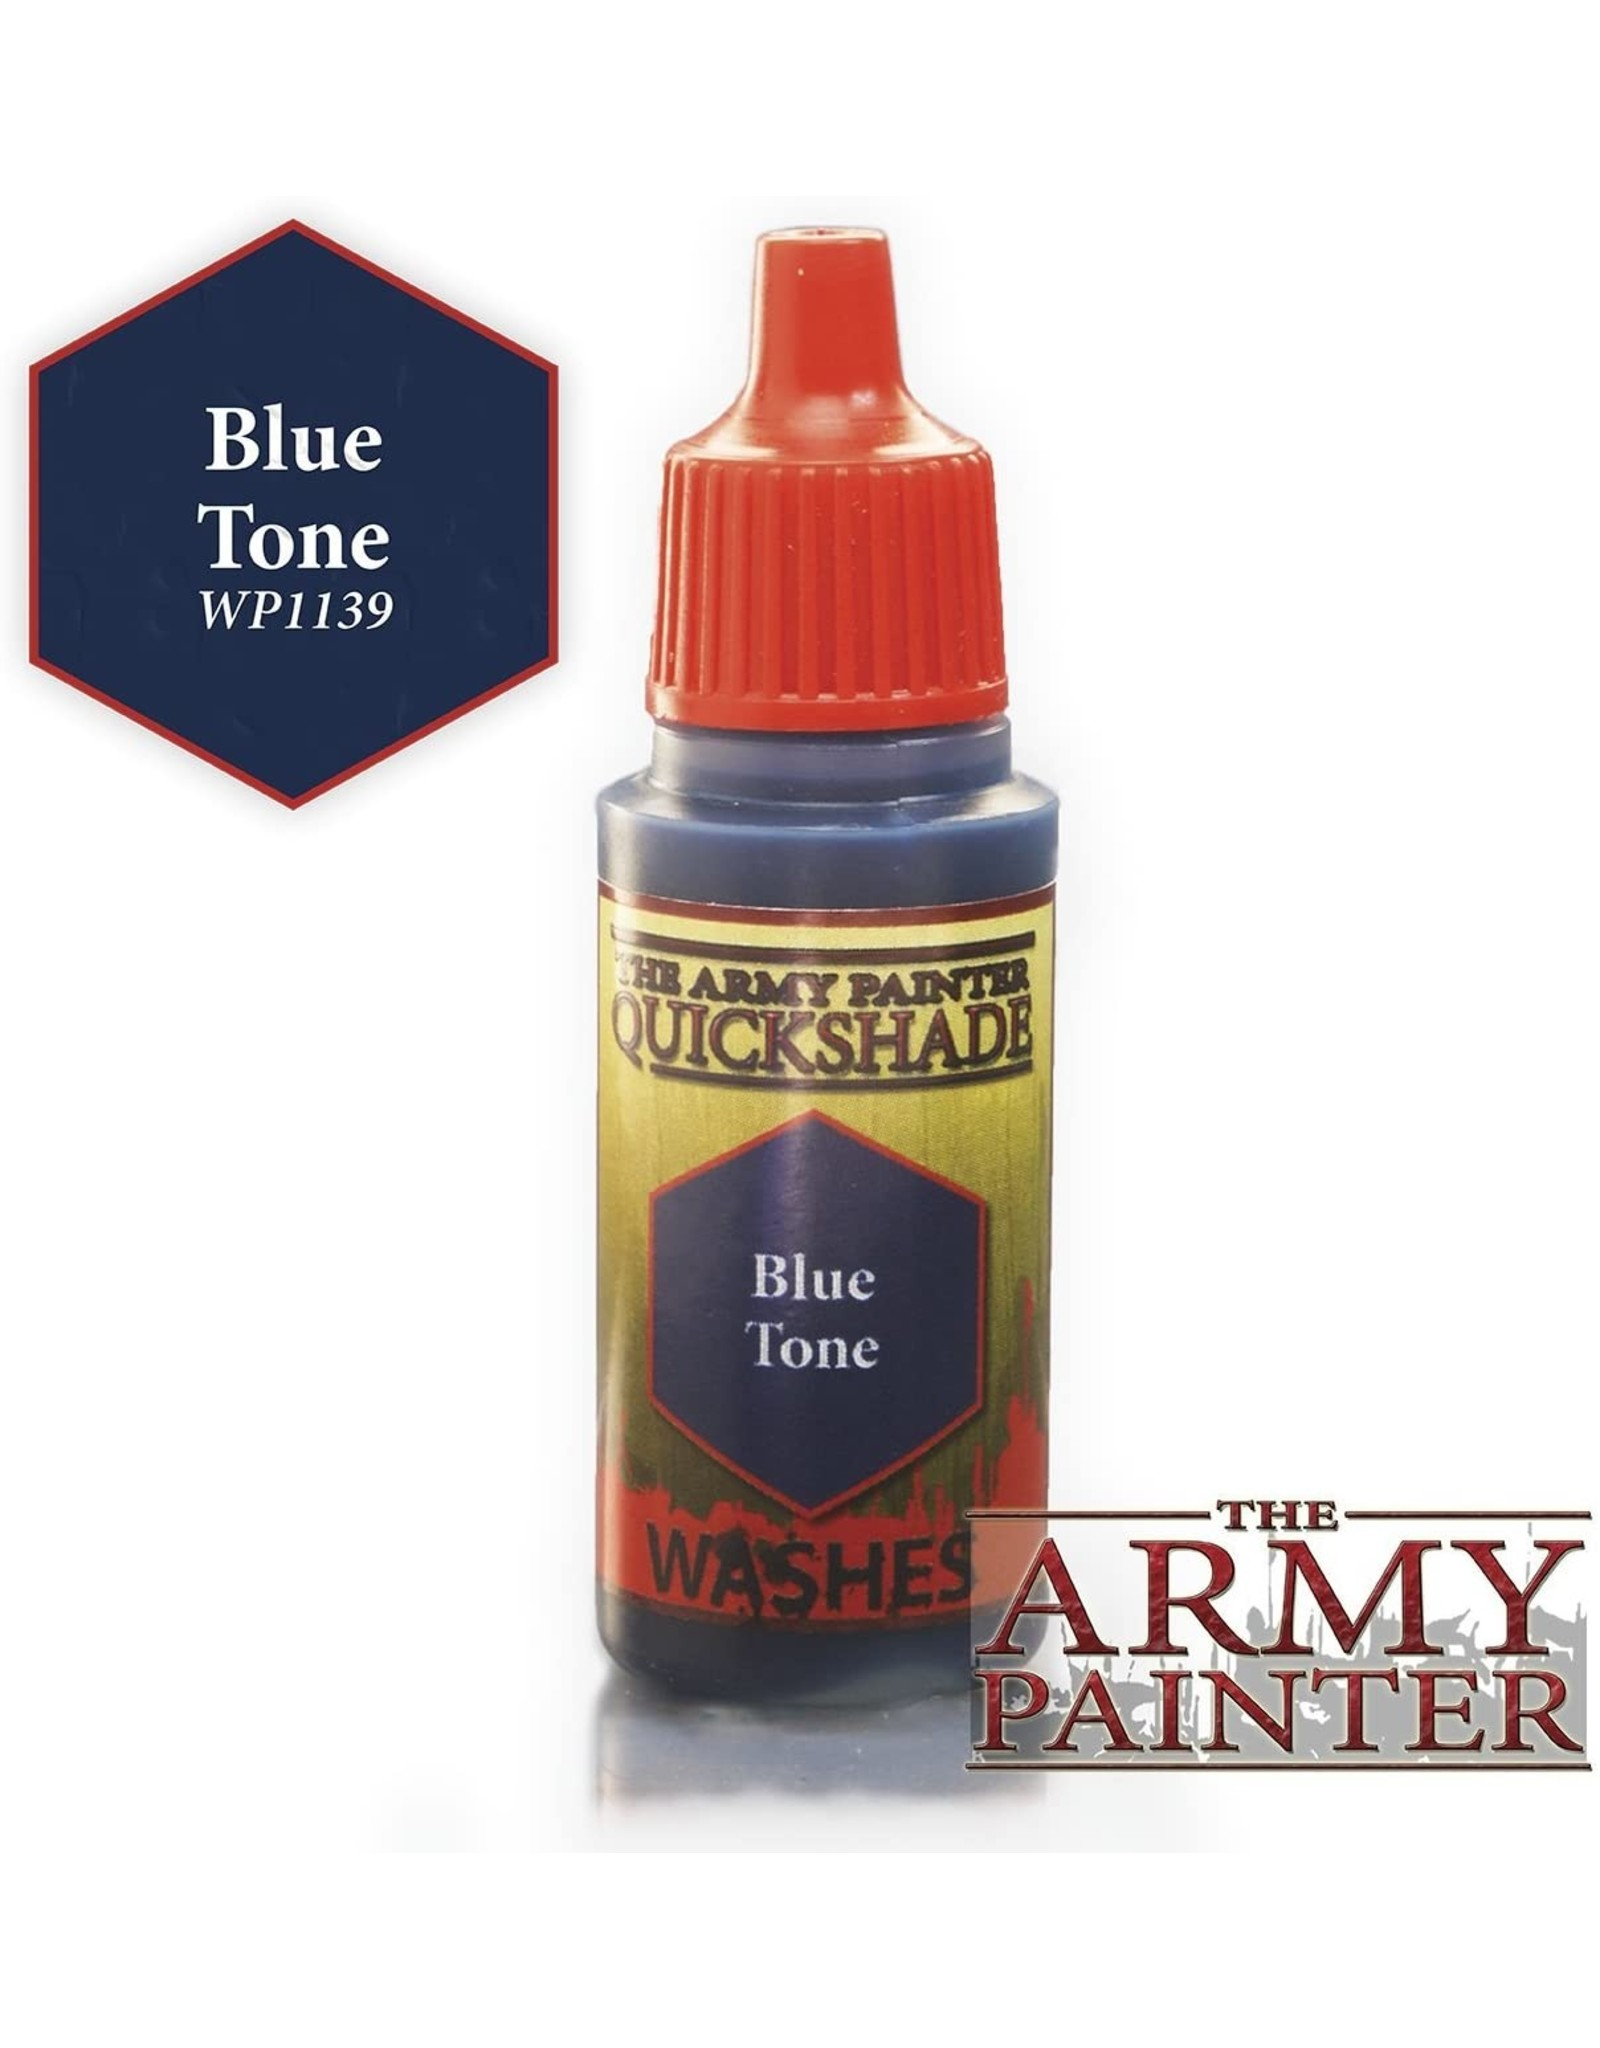 THE ARMY PAINTER ARMY PAINTER WARPAINTS QUICK SHADE WASHES BLUE TONE INK